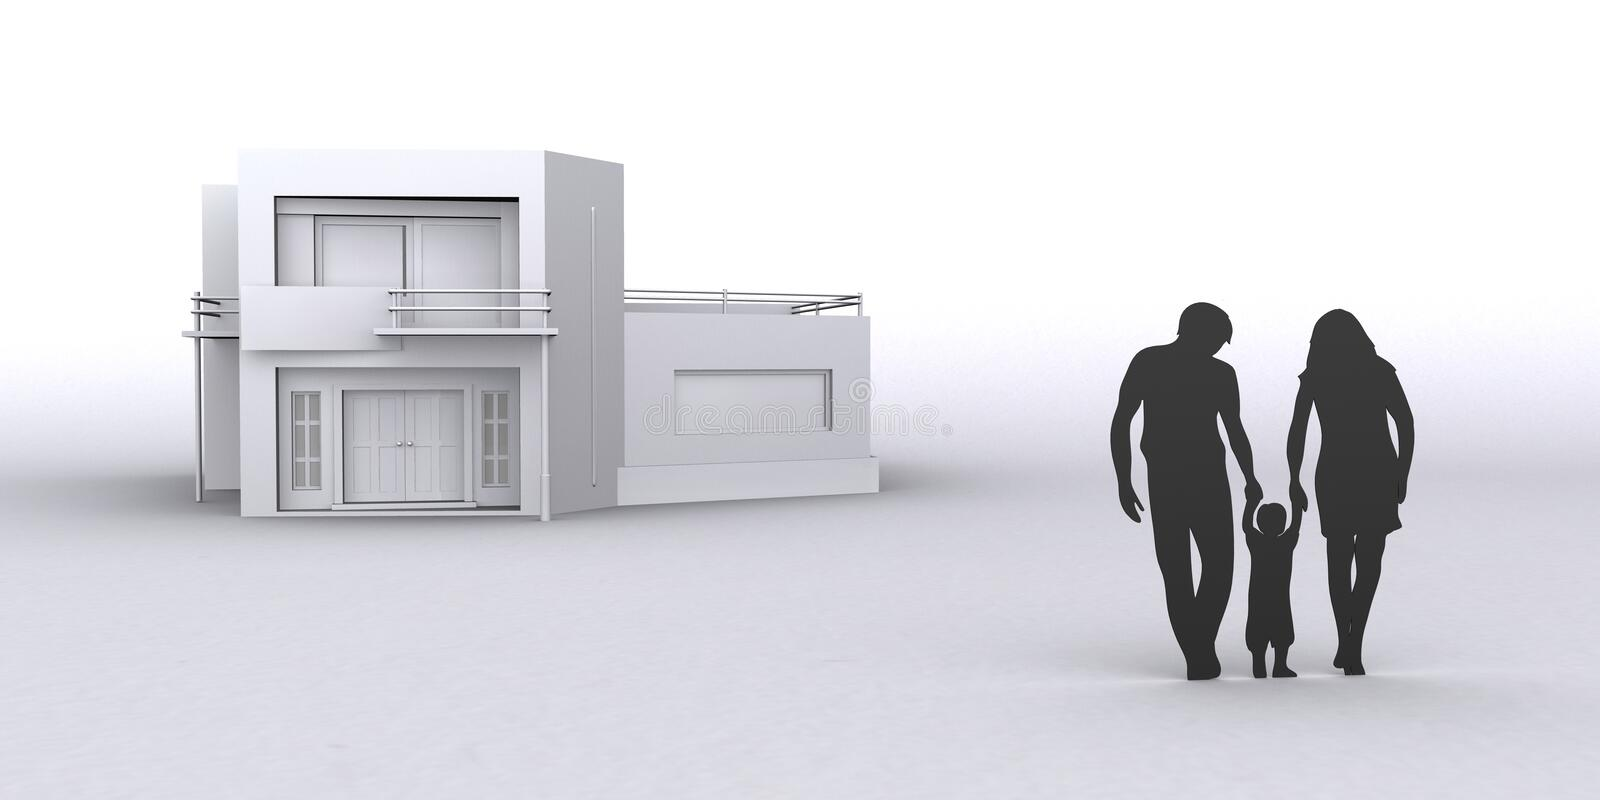 Neues Haus des Familienkaufes, Illustration der Grafik 3D stockfoto